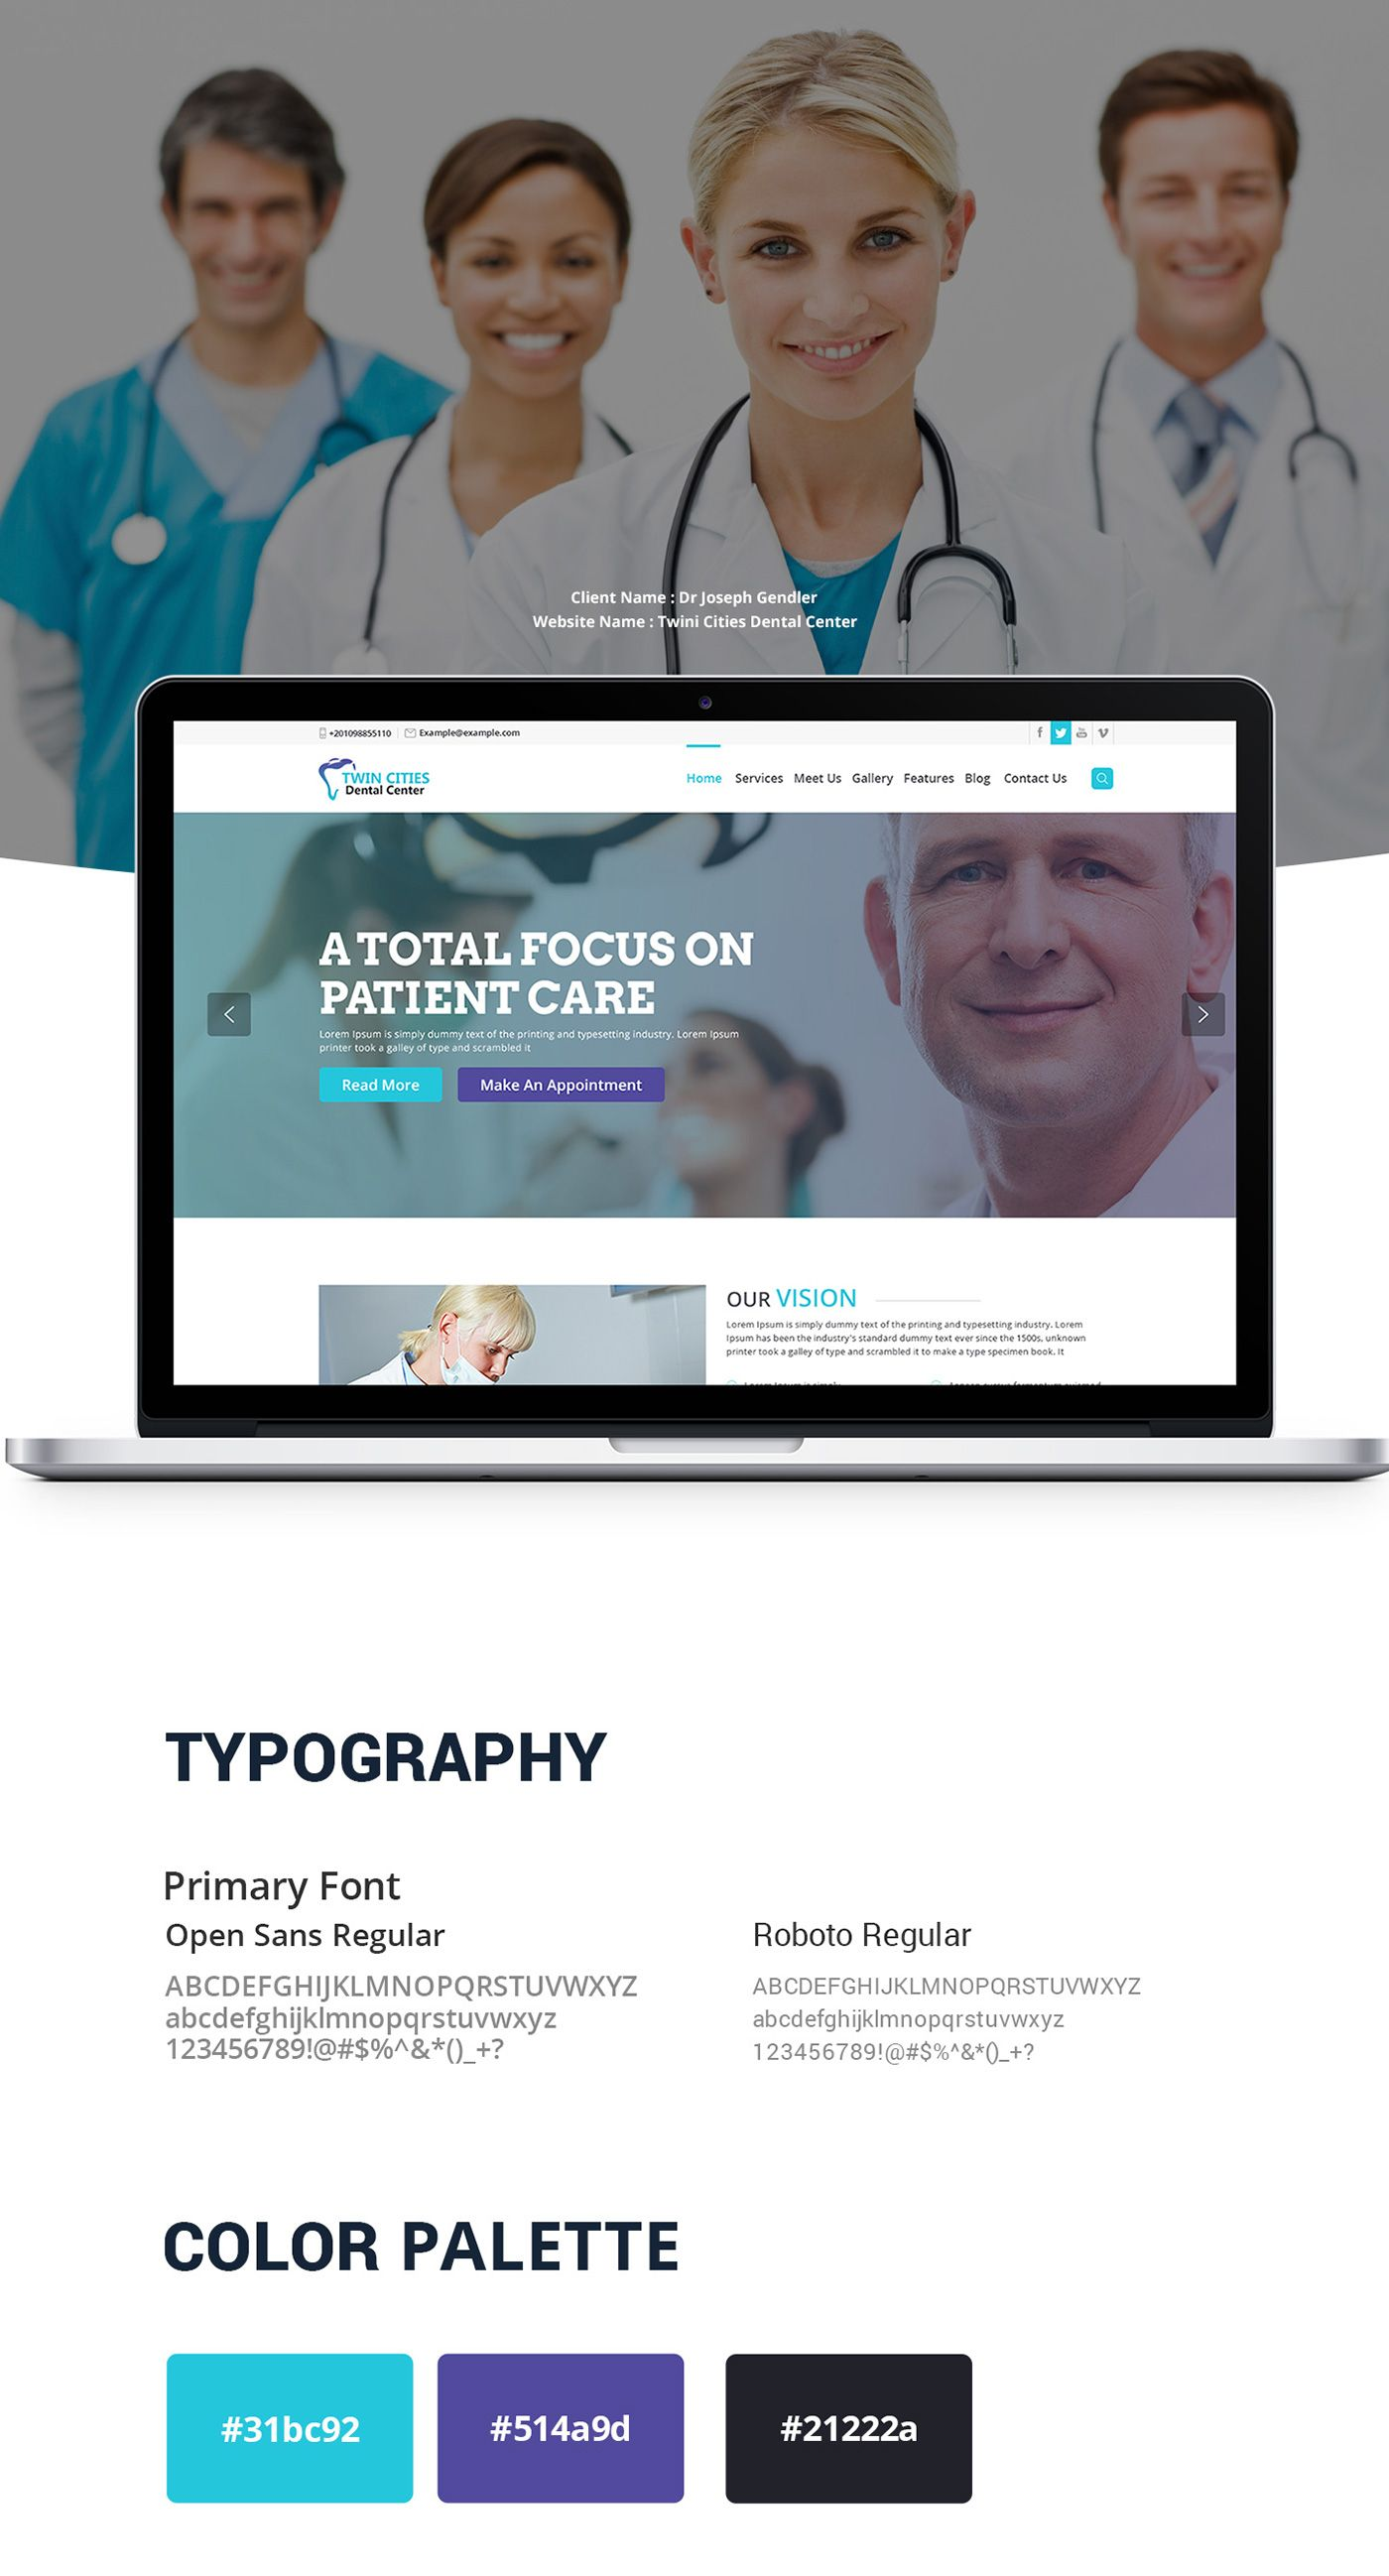 dental clinic website design | Dental Website Design | Pinterest ...